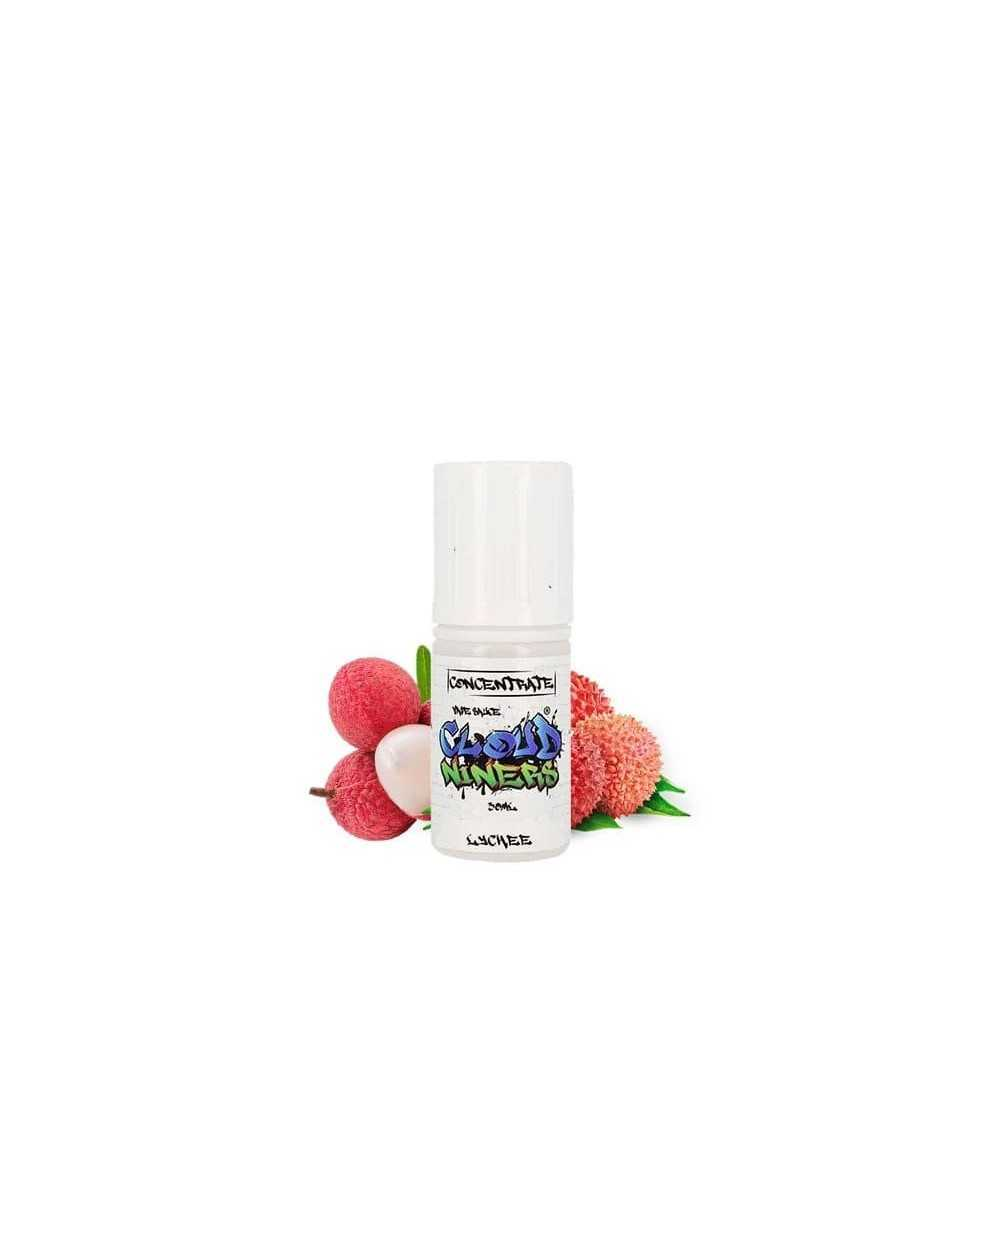 Concentrated aroma Lychee 30ml - Cloud Niners-1